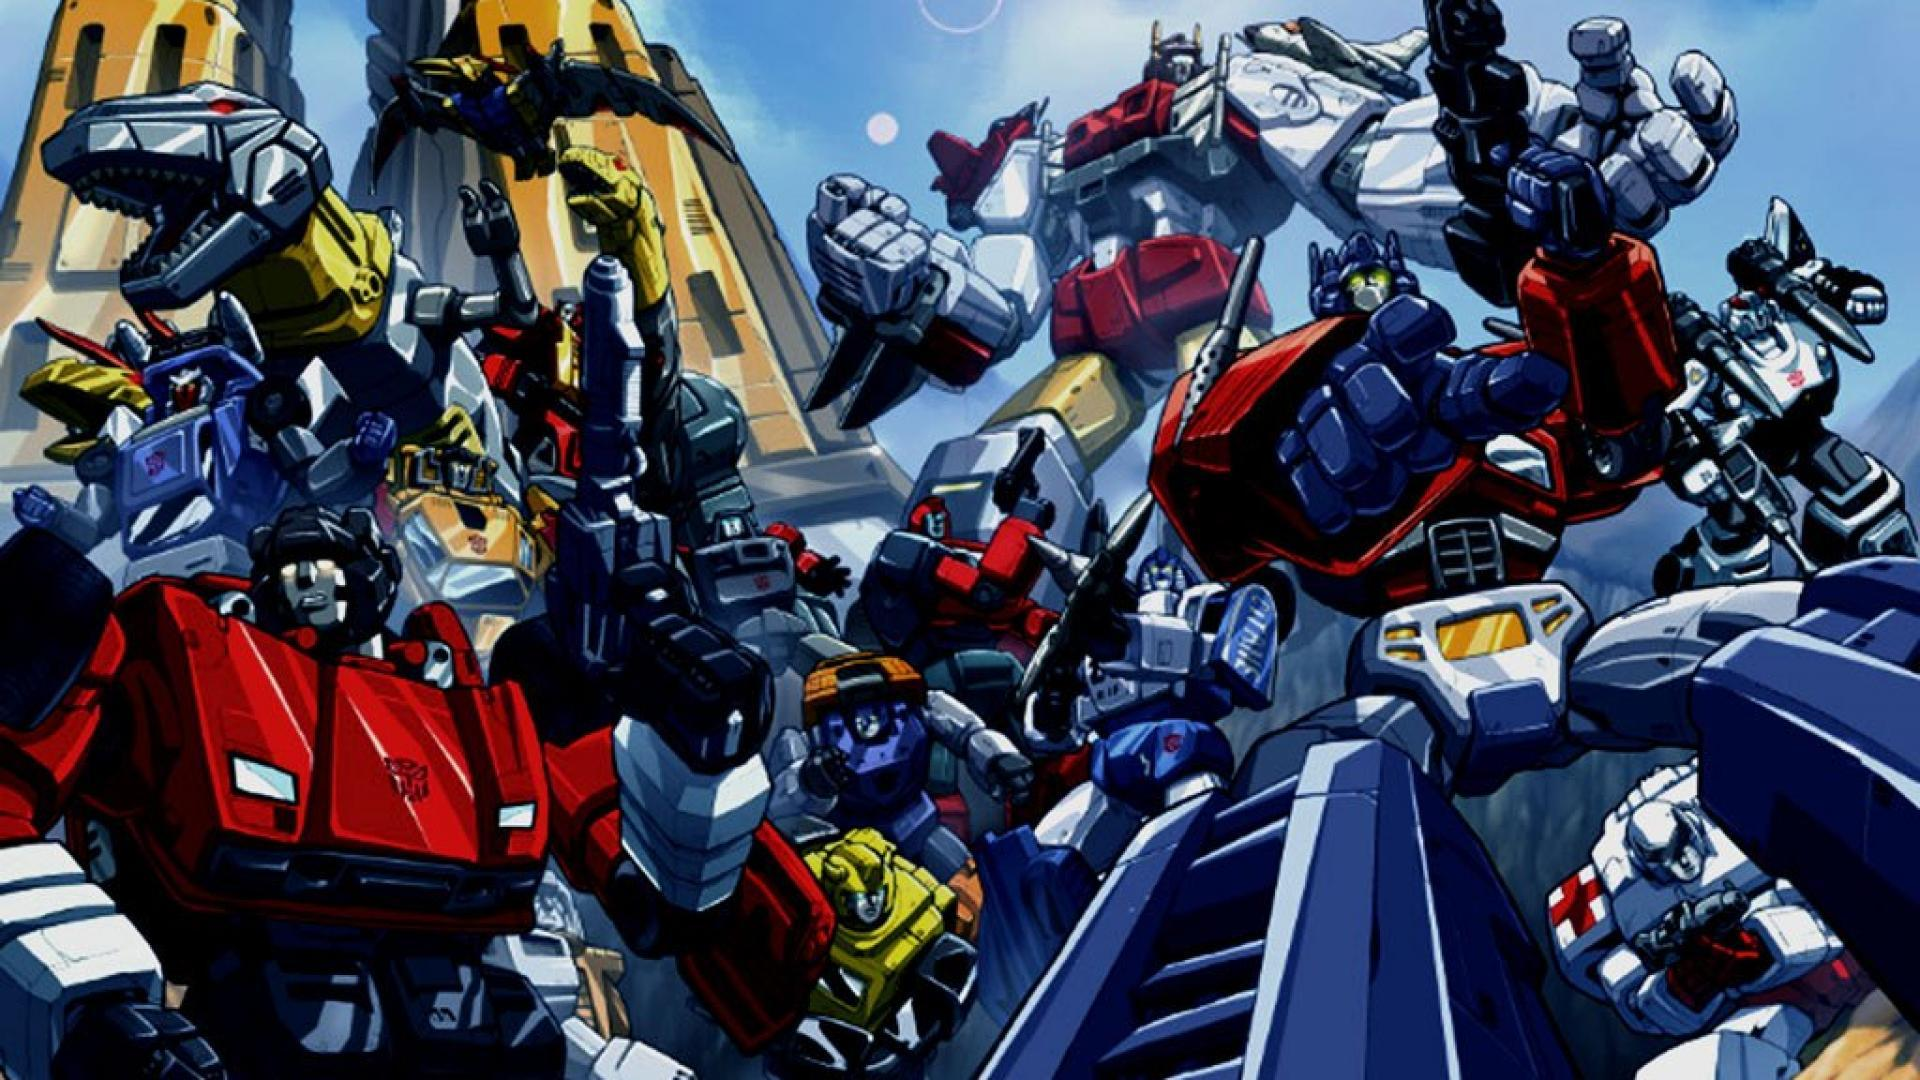 Transformers wallpapers autobots hd wallpaper cave - Transformers desktop backgrounds ...